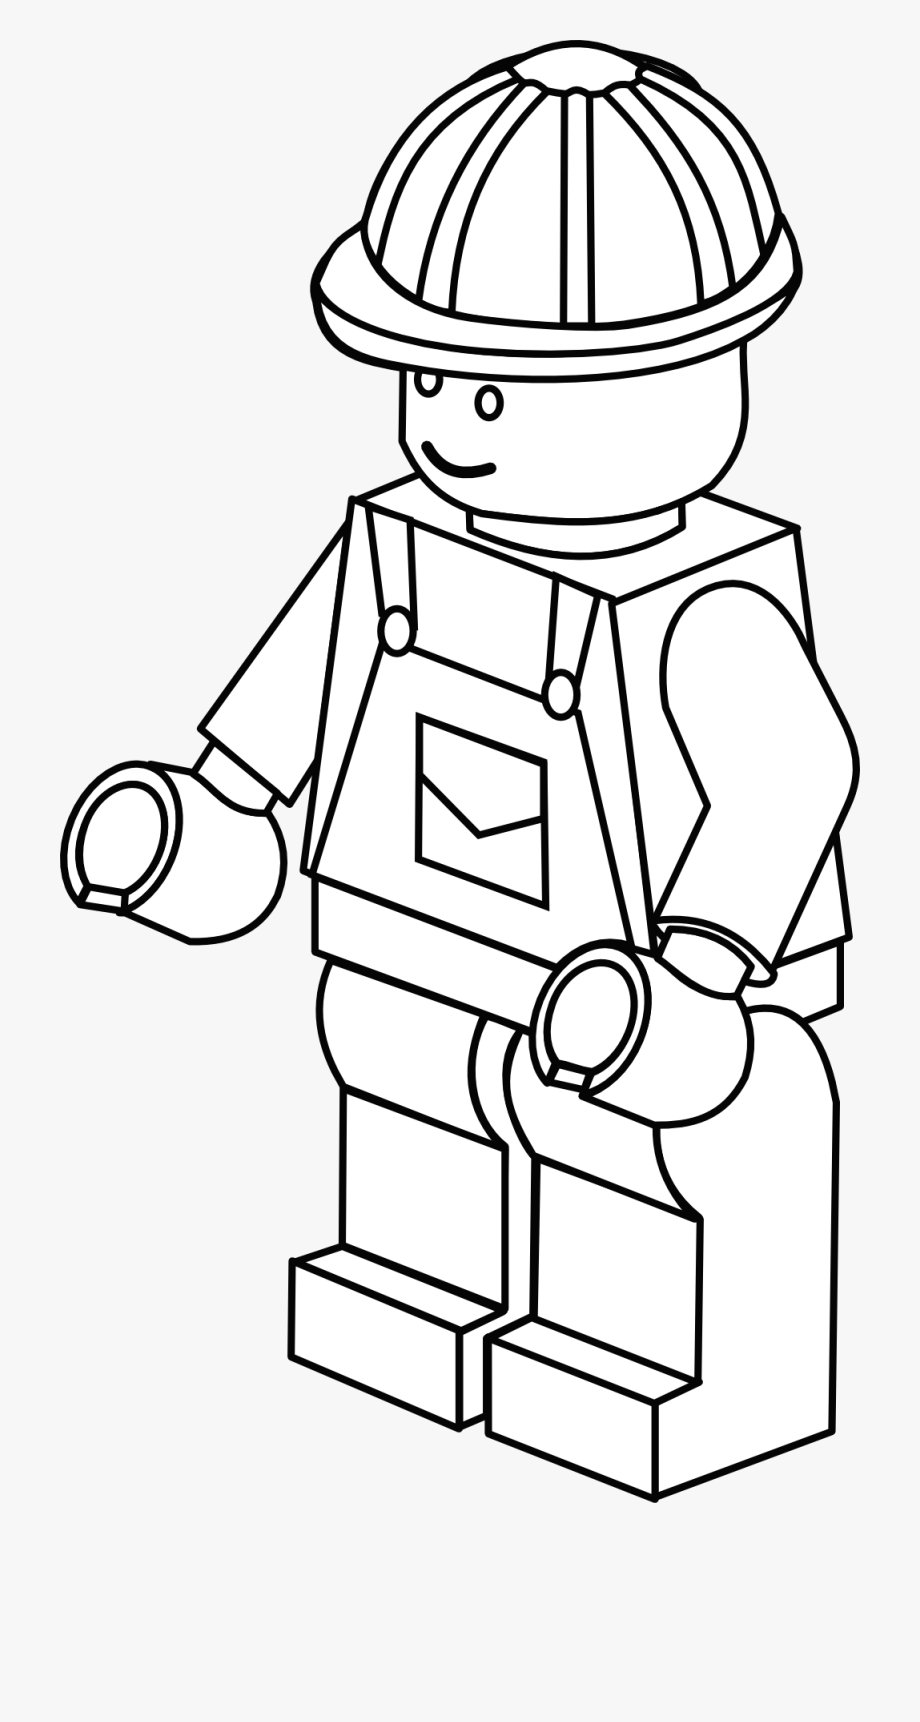 lego coloring sheets lego coloring pages 07 lego coloring sheets